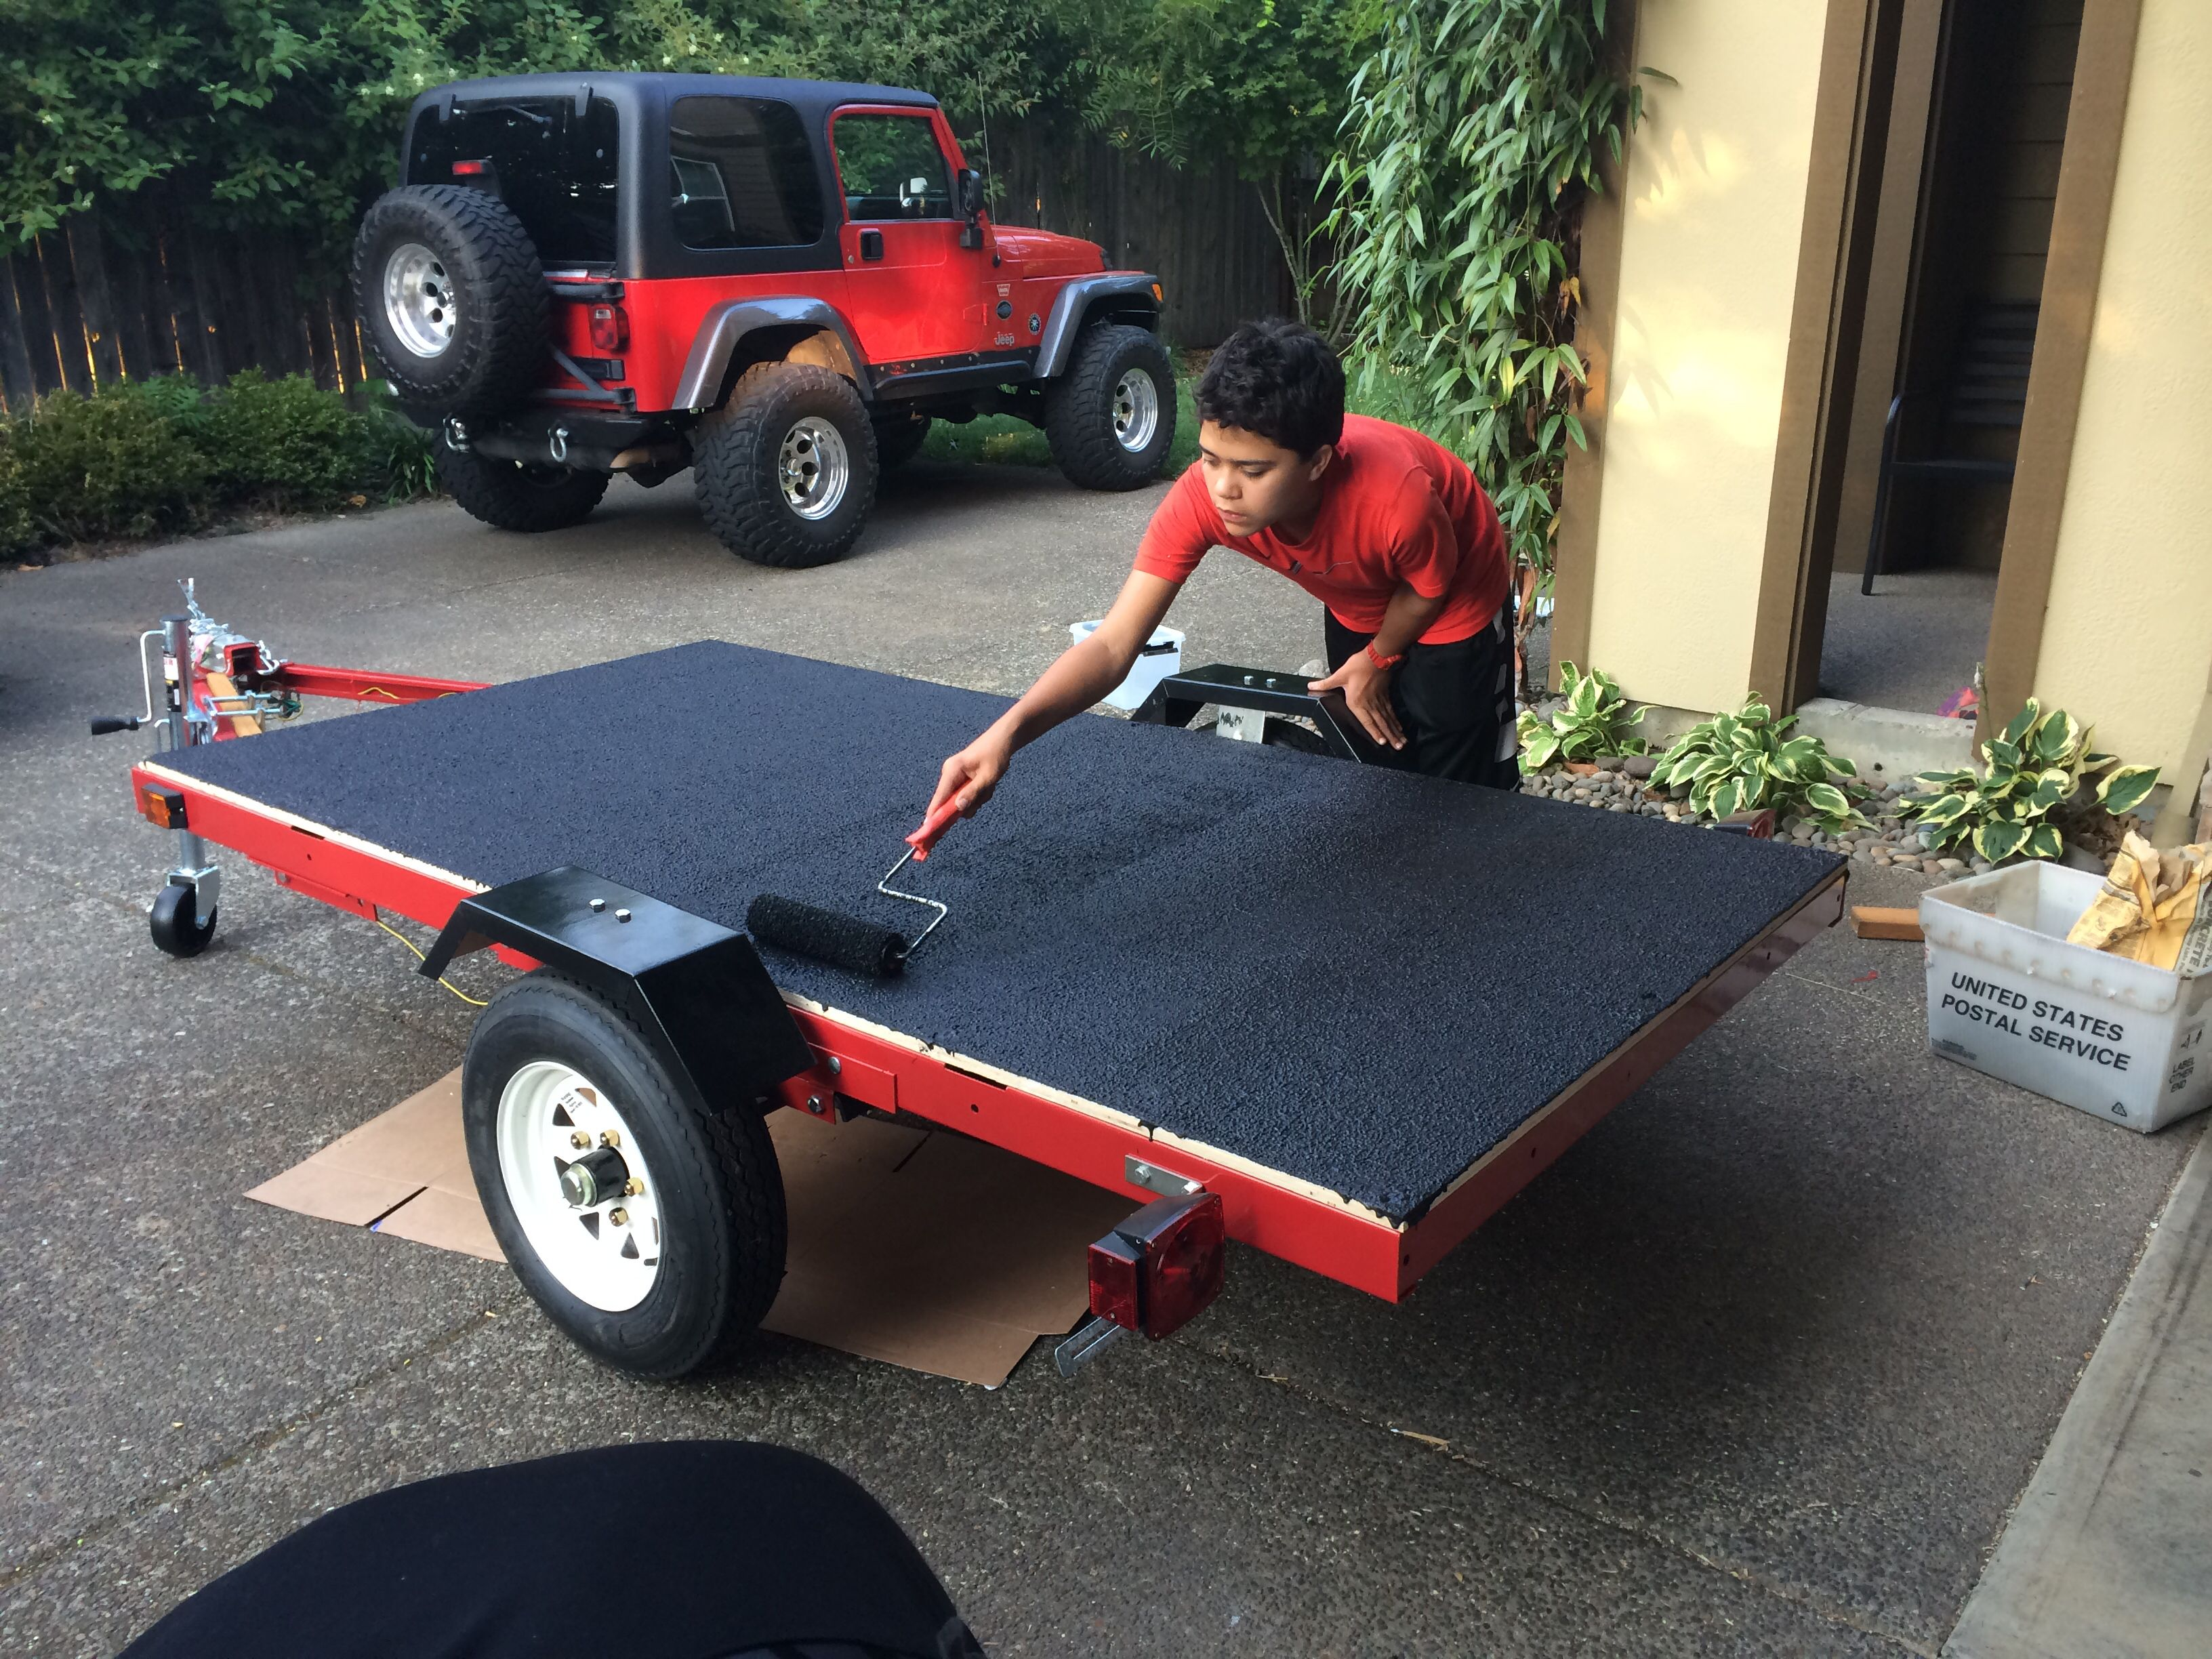 hight resolution of harbor freight trailer with deck concrete restore 10x rust oleum textured paint tinted black 1 gallon this is the same trailer used to create teardrop